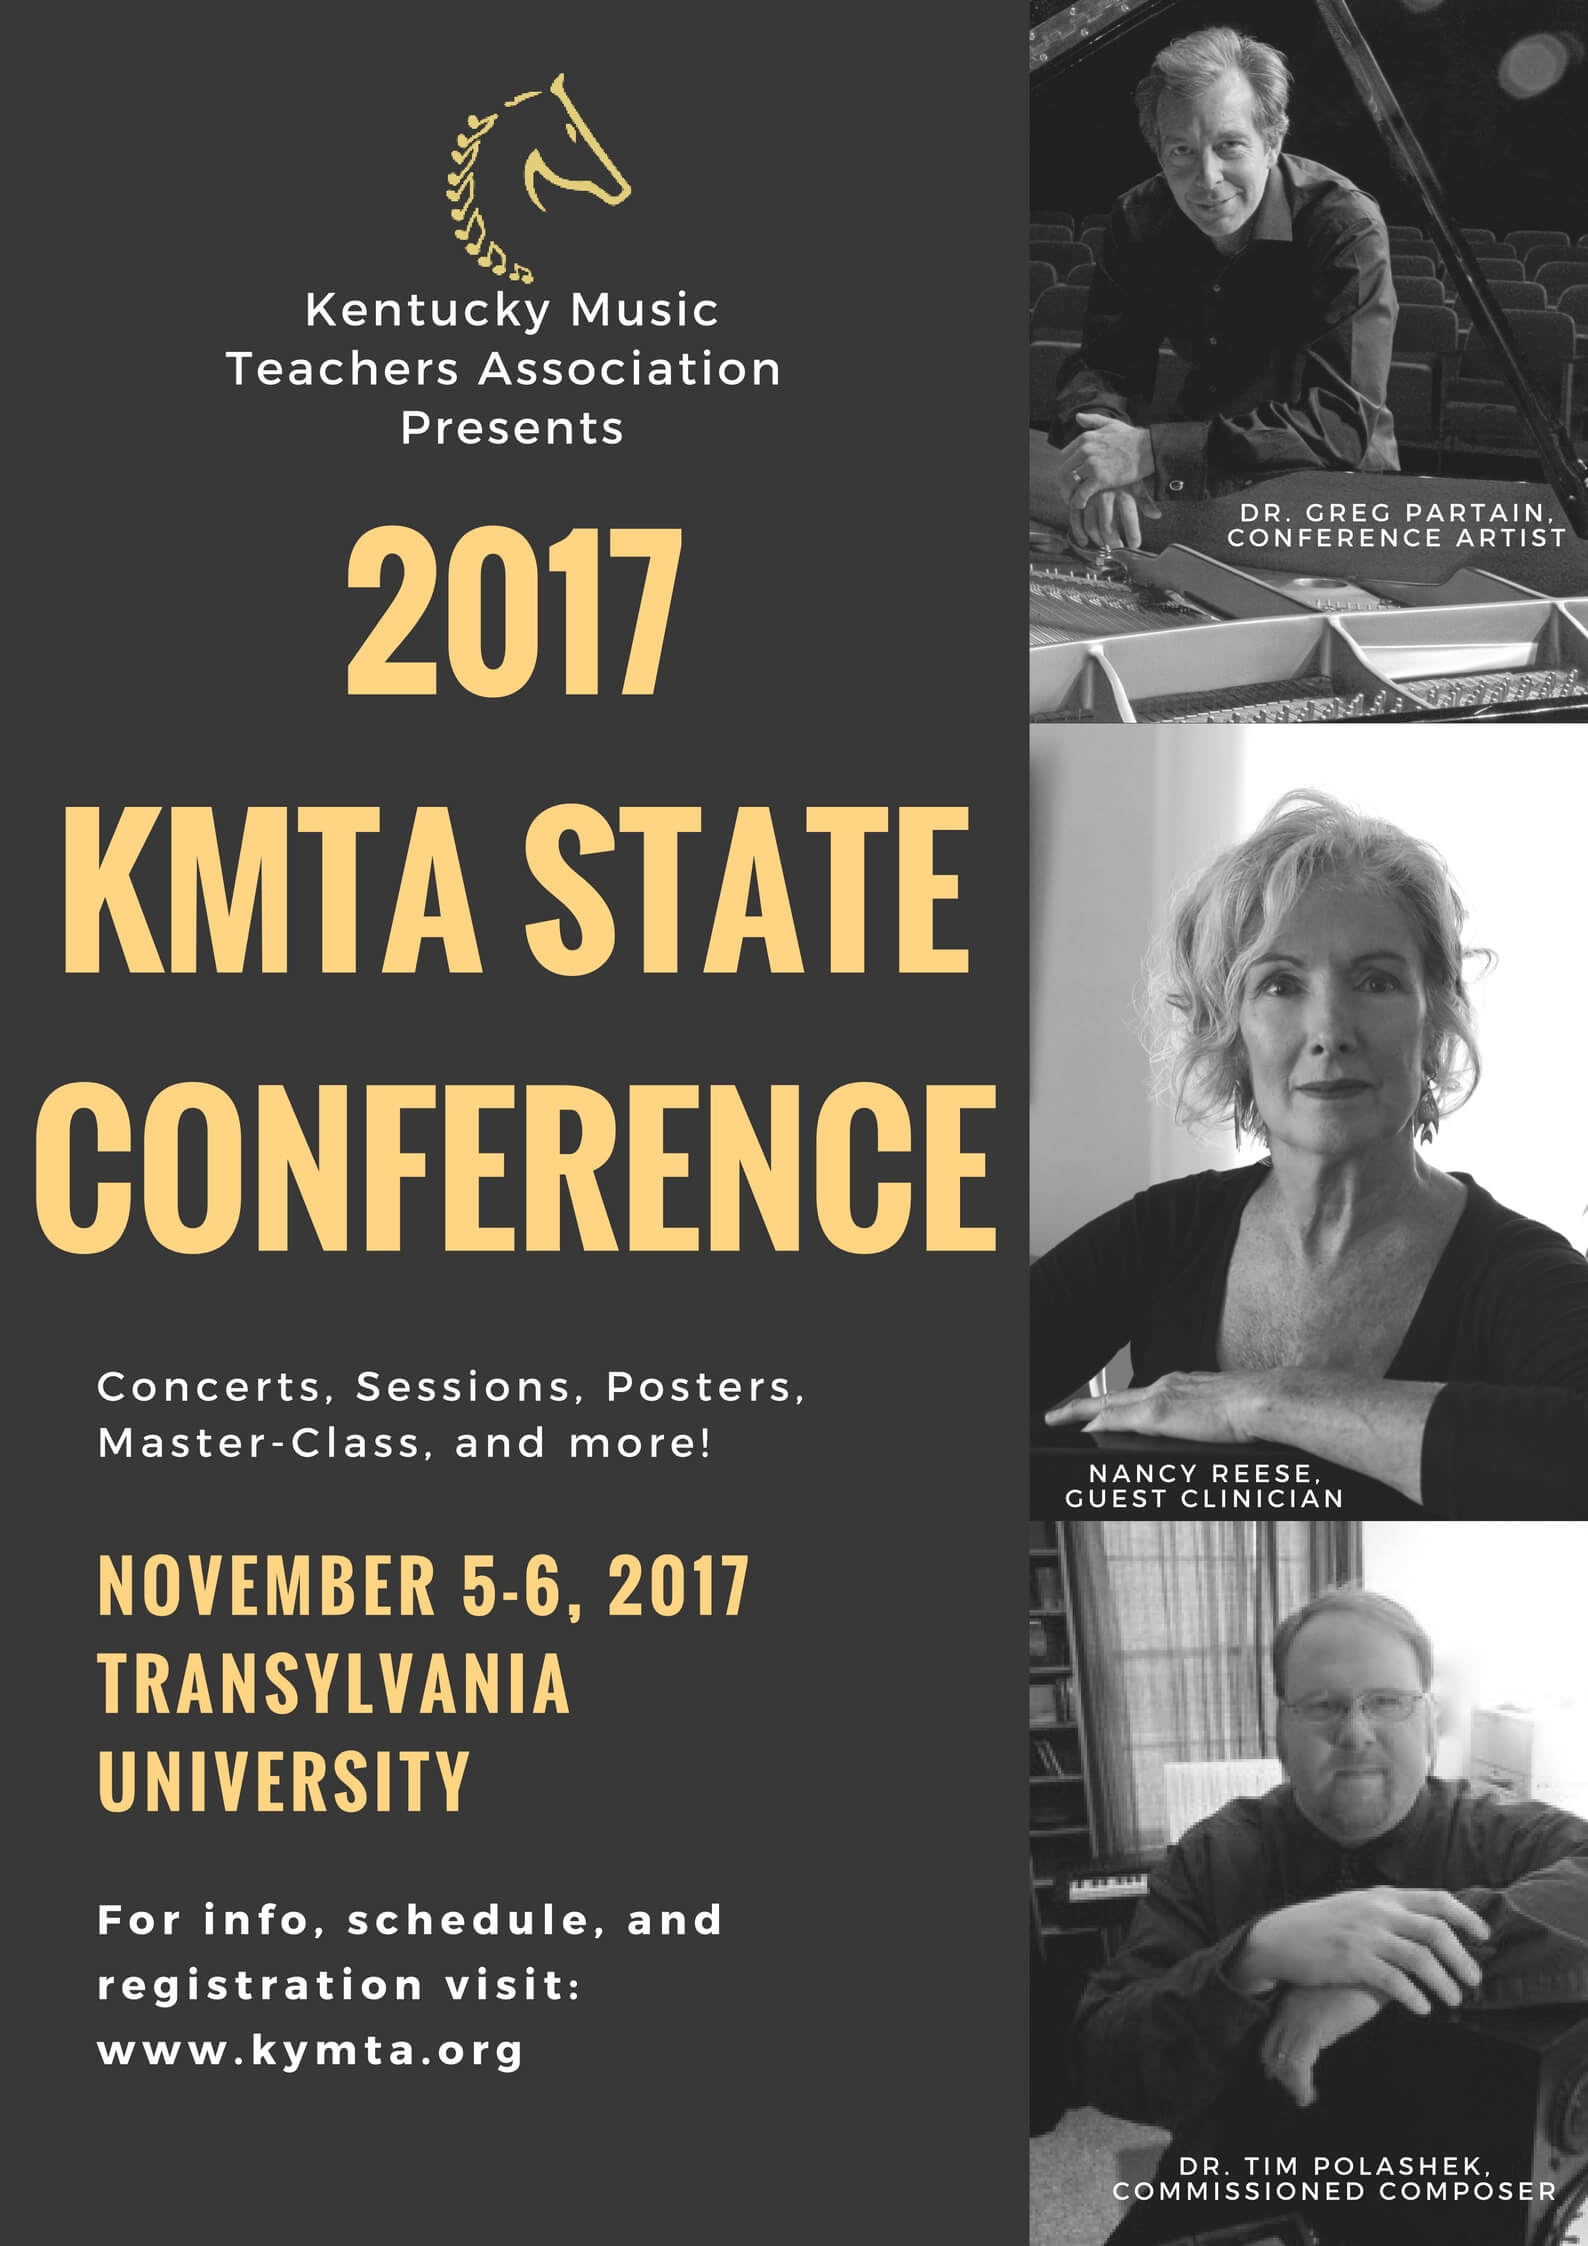 2017 KMTA State Conference poster